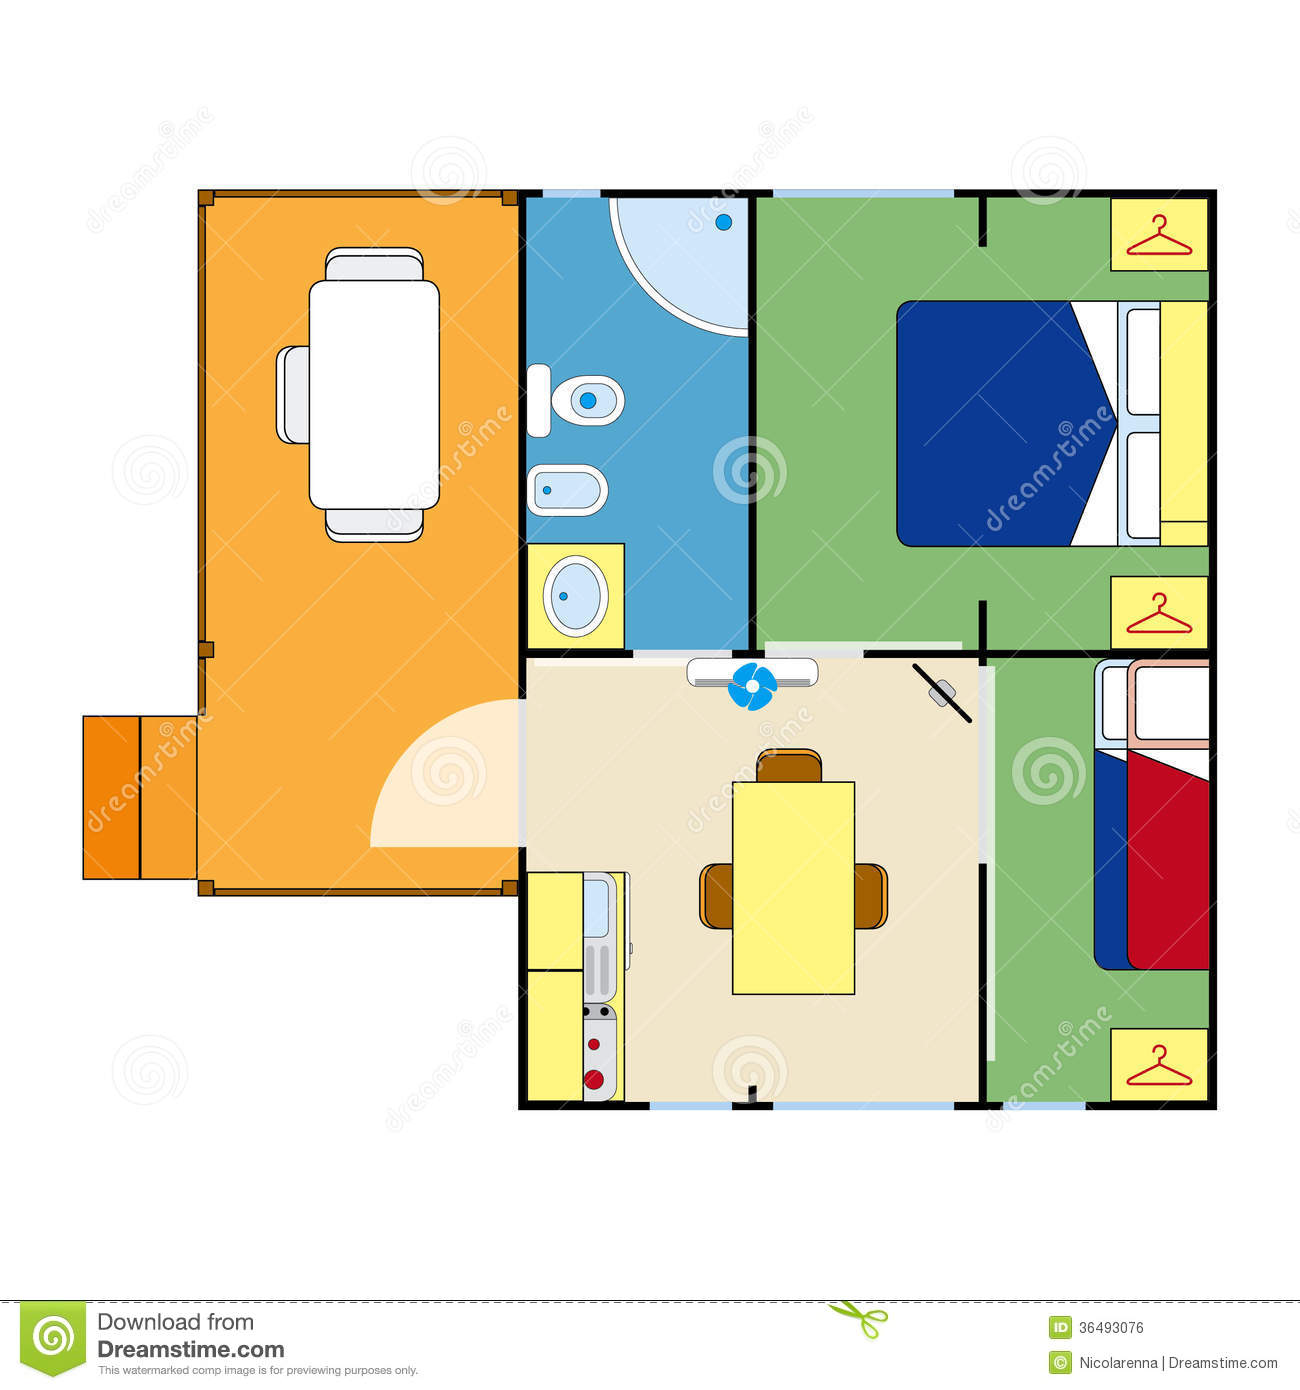 Apartment plan royalty free stock image image 36493076 for Apartment stock plans